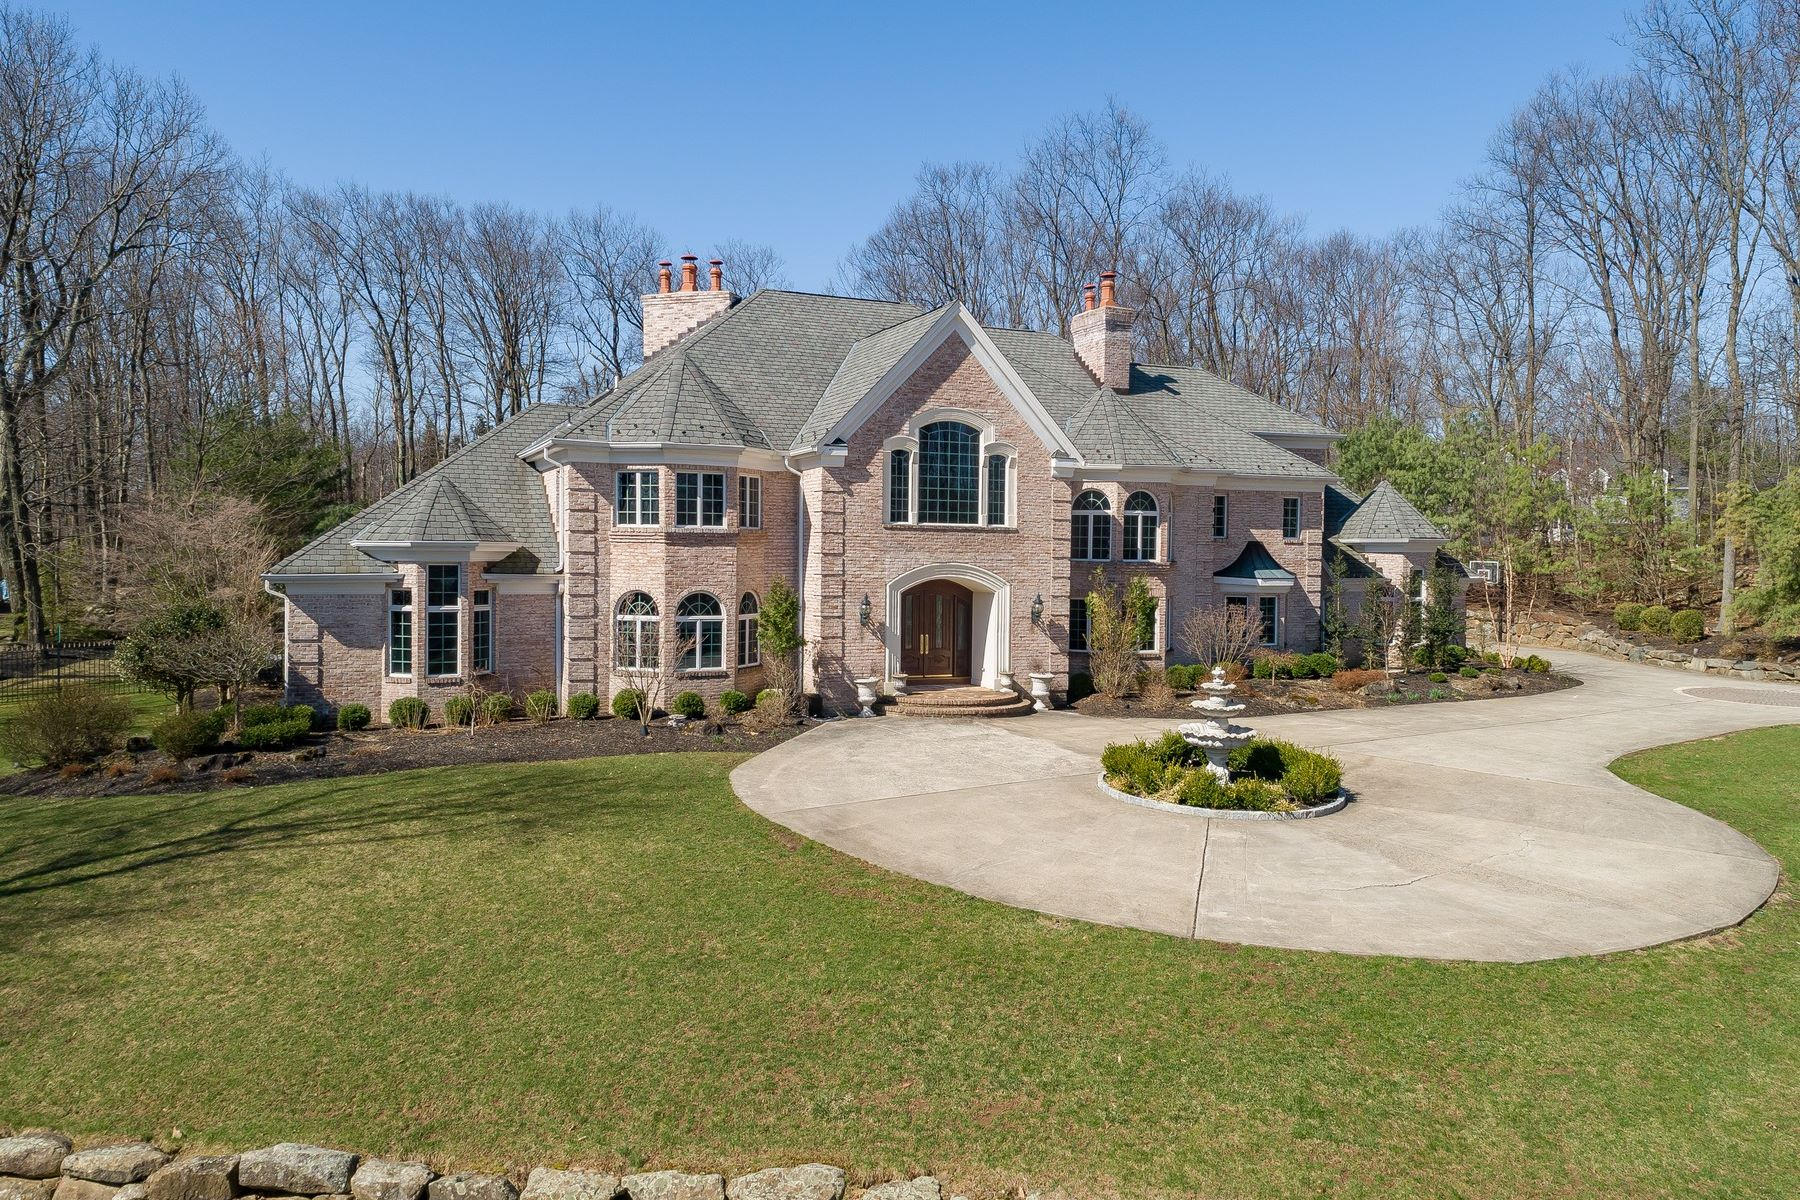 Moradia para Venda às Exquisite Custom Home 5 Queens Court, Mendham, Nova Jersey 07945 Estados Unidos